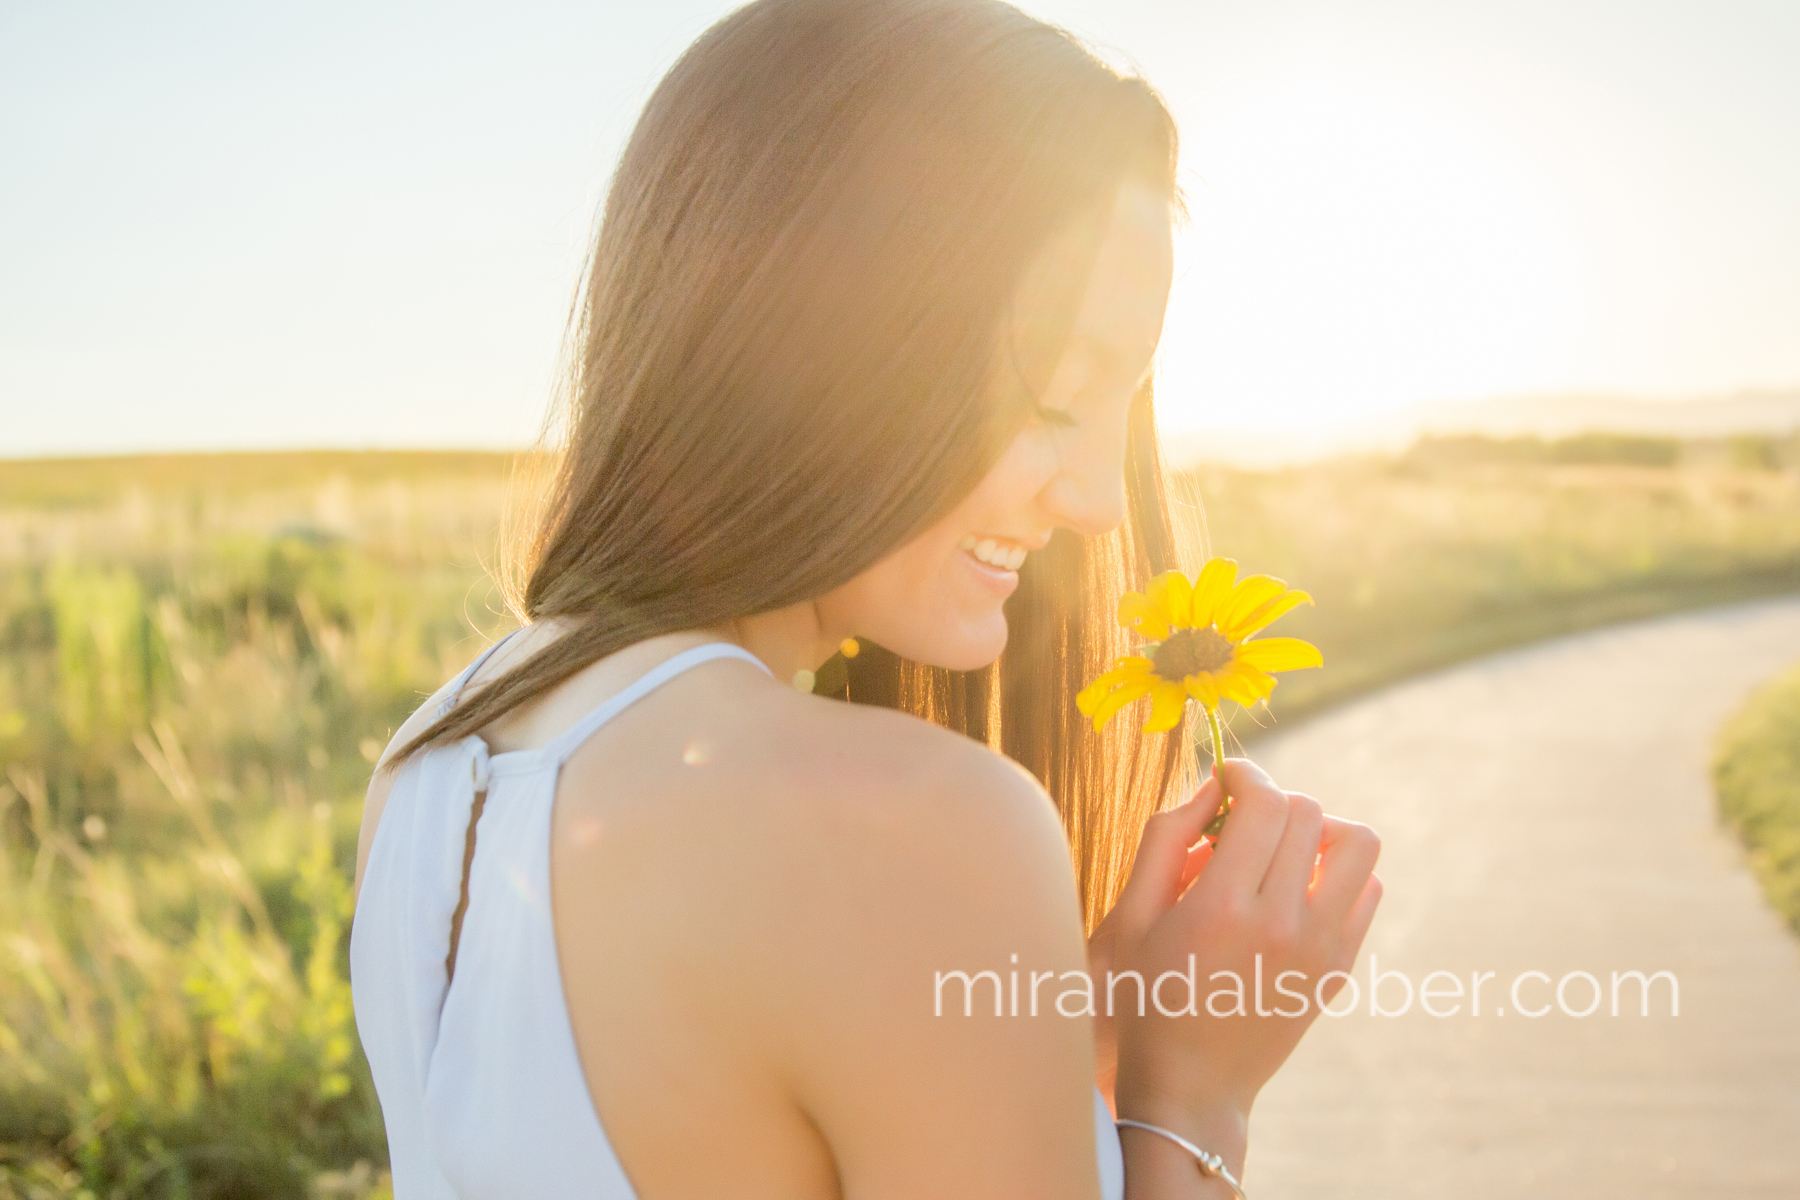 denver senior photographer, Miranda L. Sober Photography,